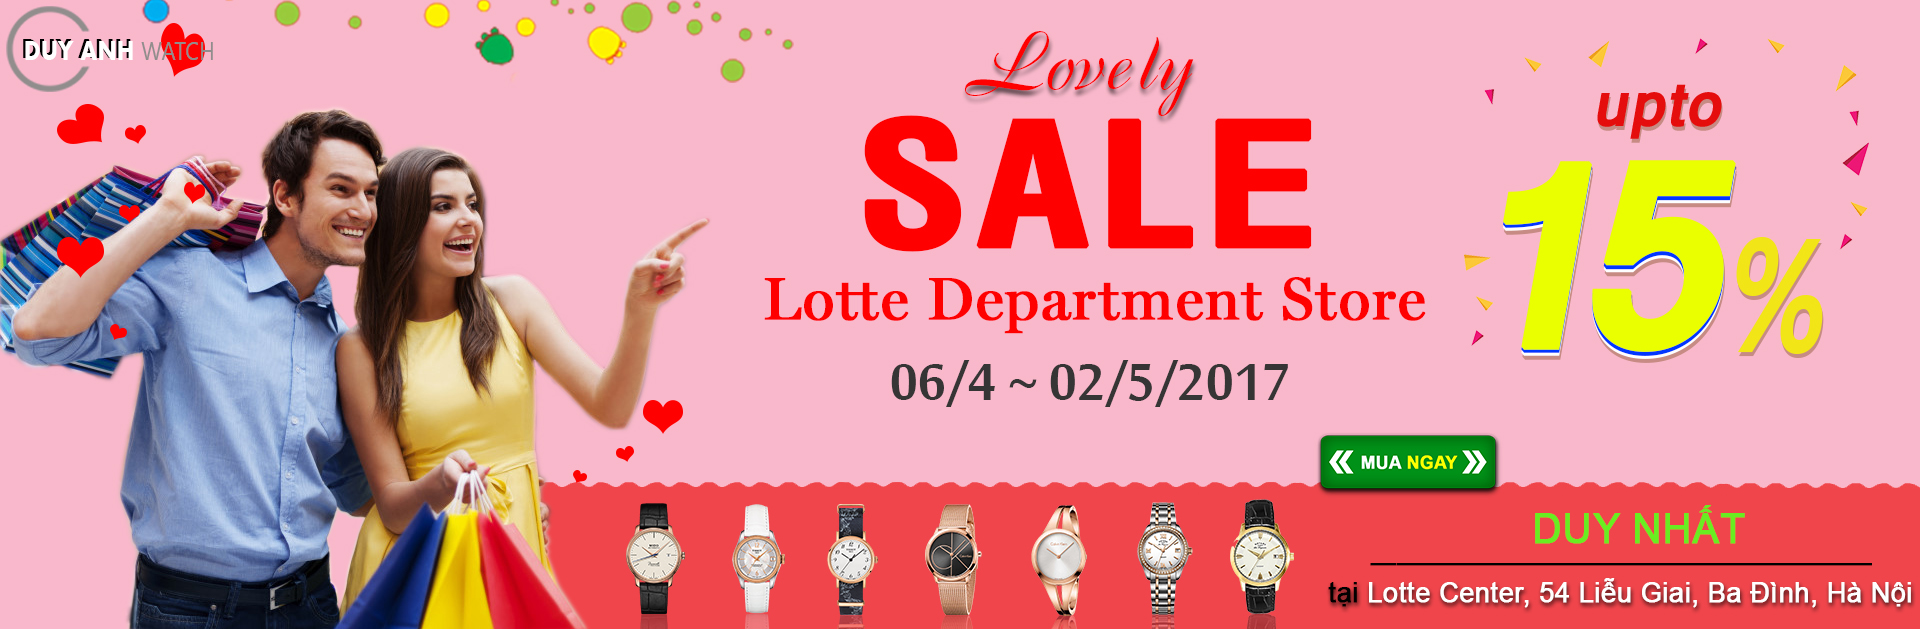 Lovely Sale